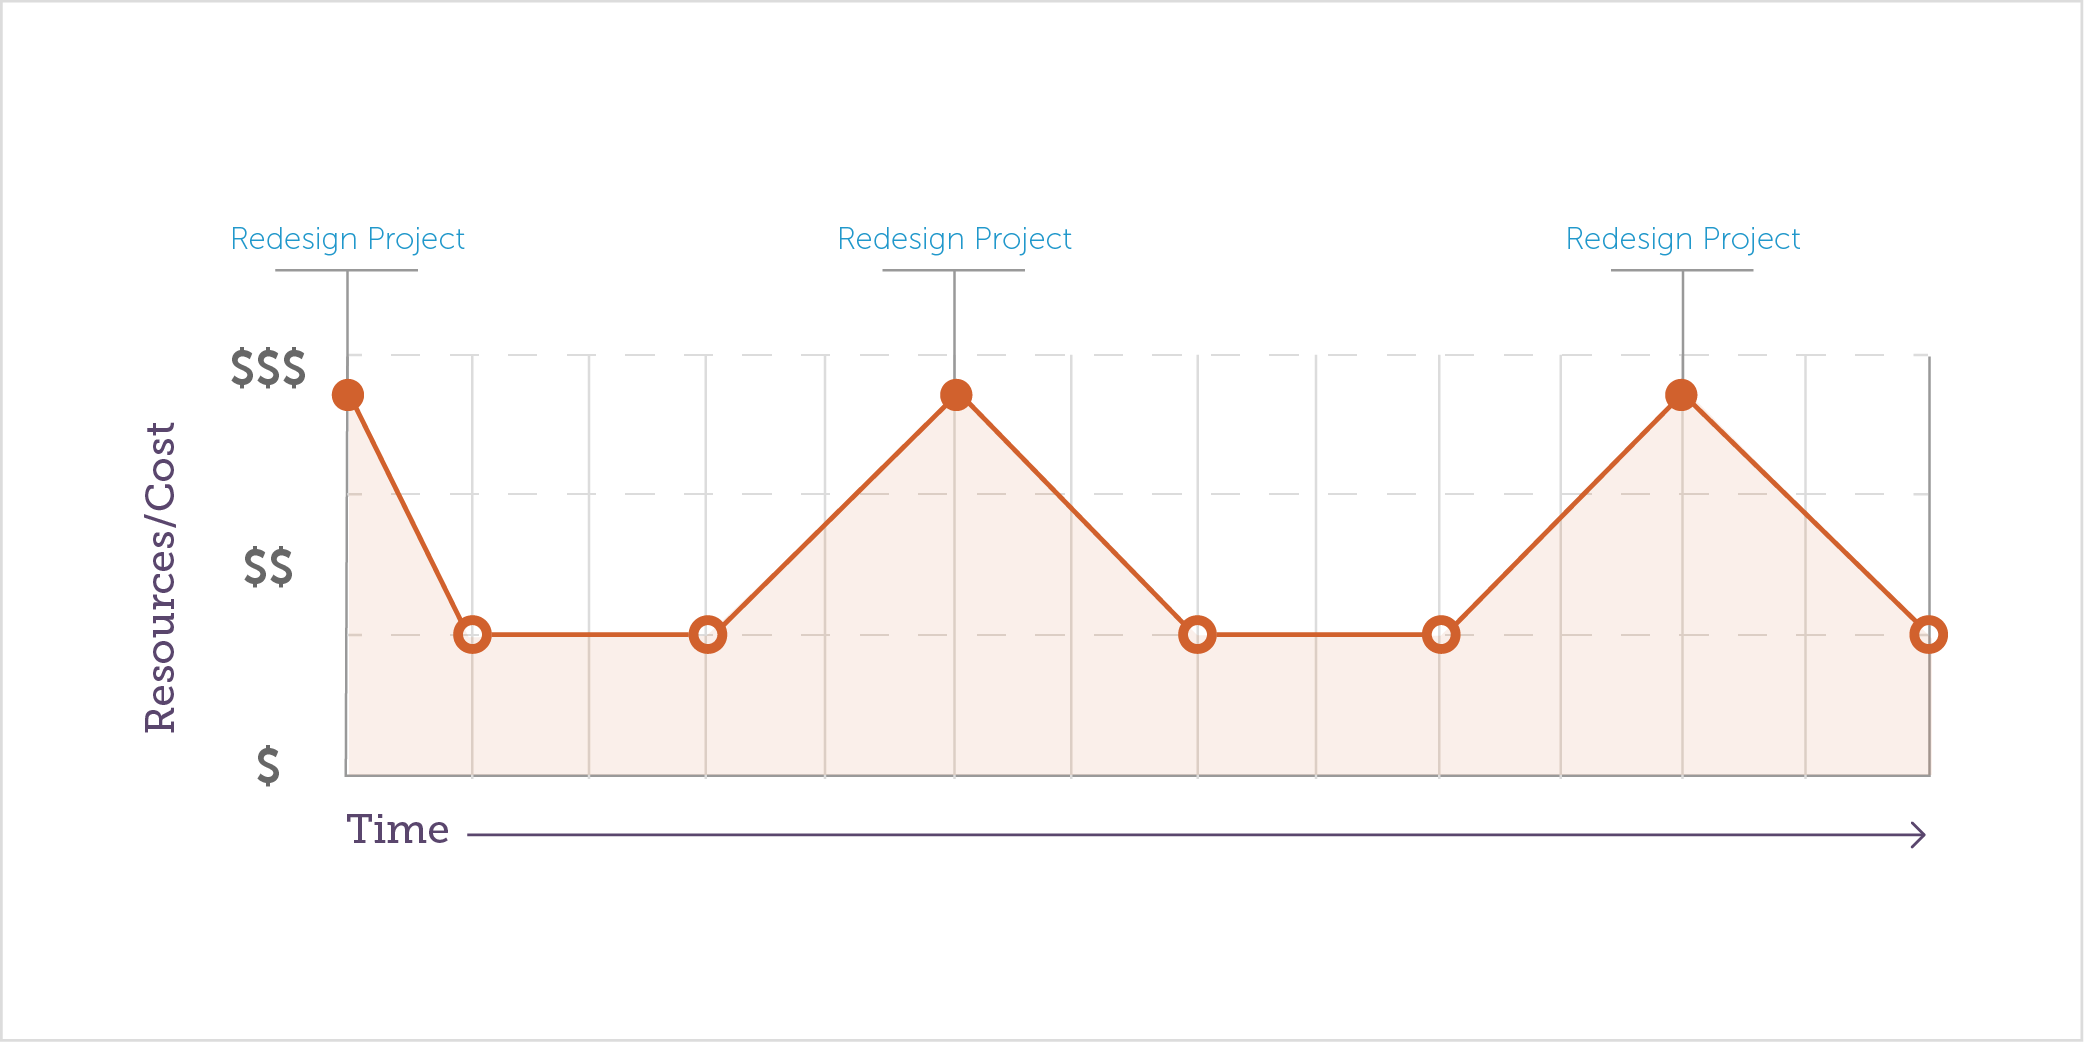 Line chart shows cyclical decrease in resources and costs in between redesign projects.